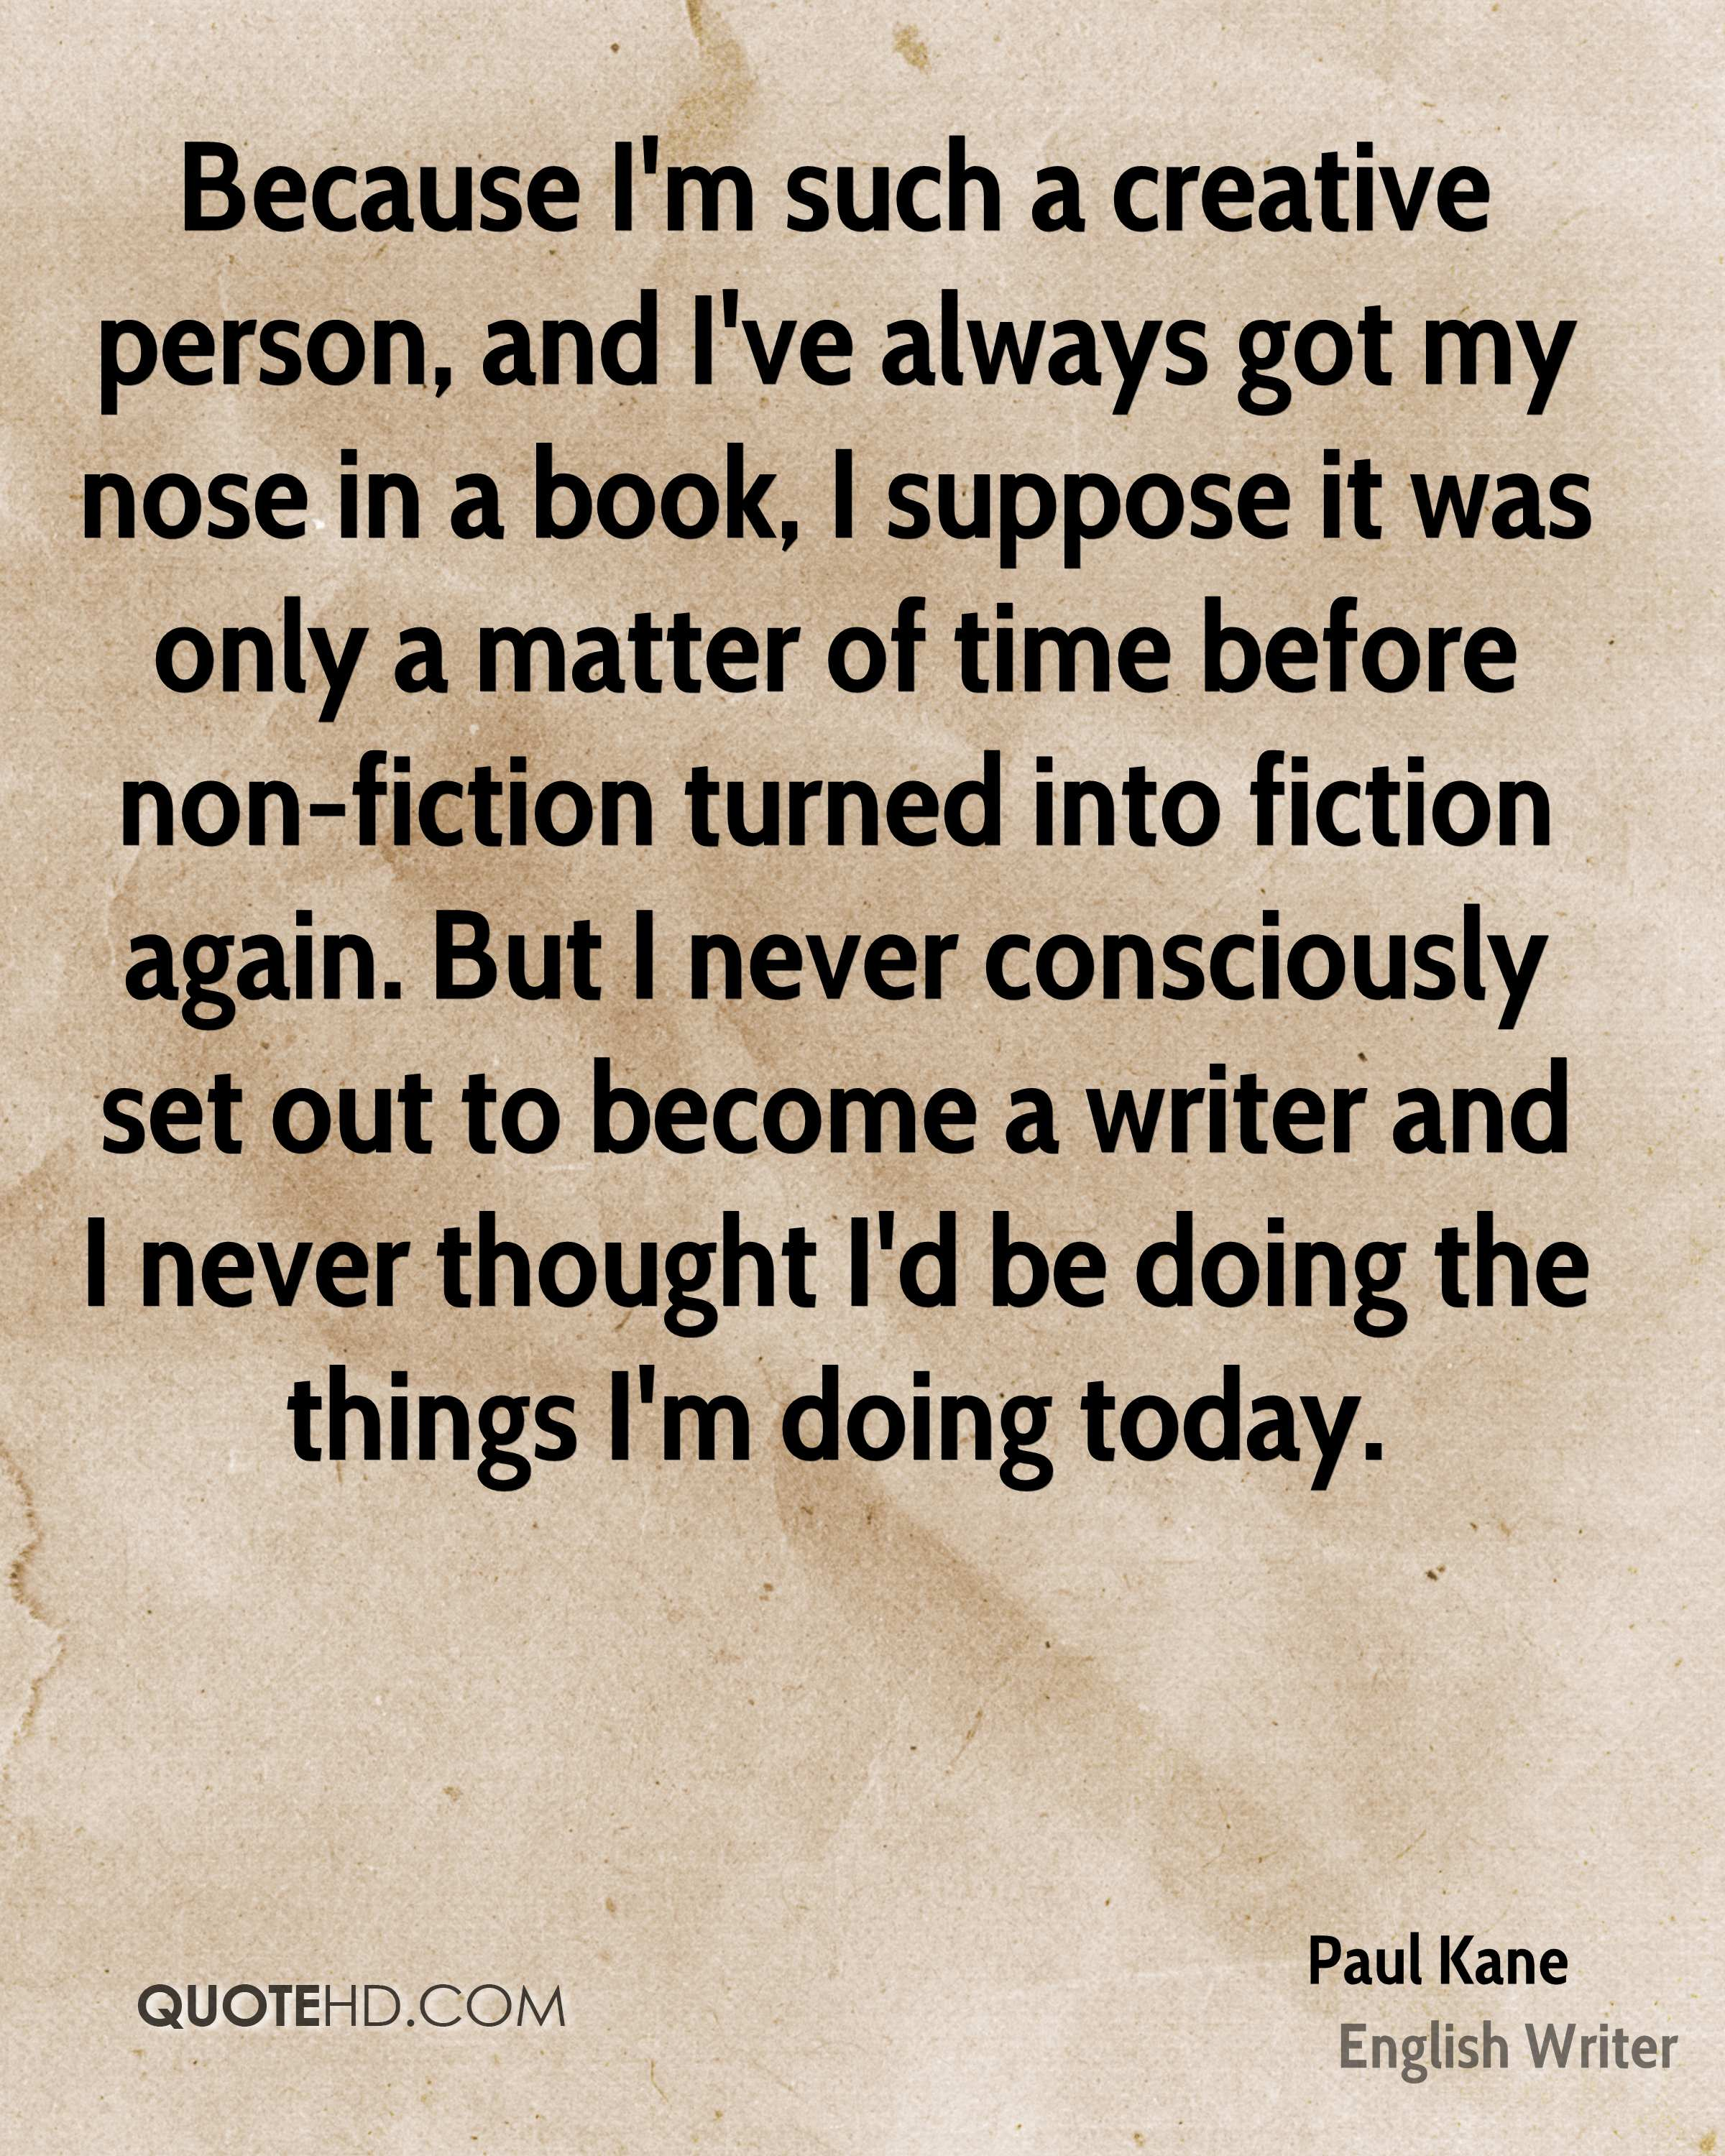 Because I'm such a creative person, and I've always got my nose in a book, I suppose it was only a matter of time before non-fiction turned into fiction again. But I never consciously set out to become a writer and I never thought I'd be doing the things I'm doing today.